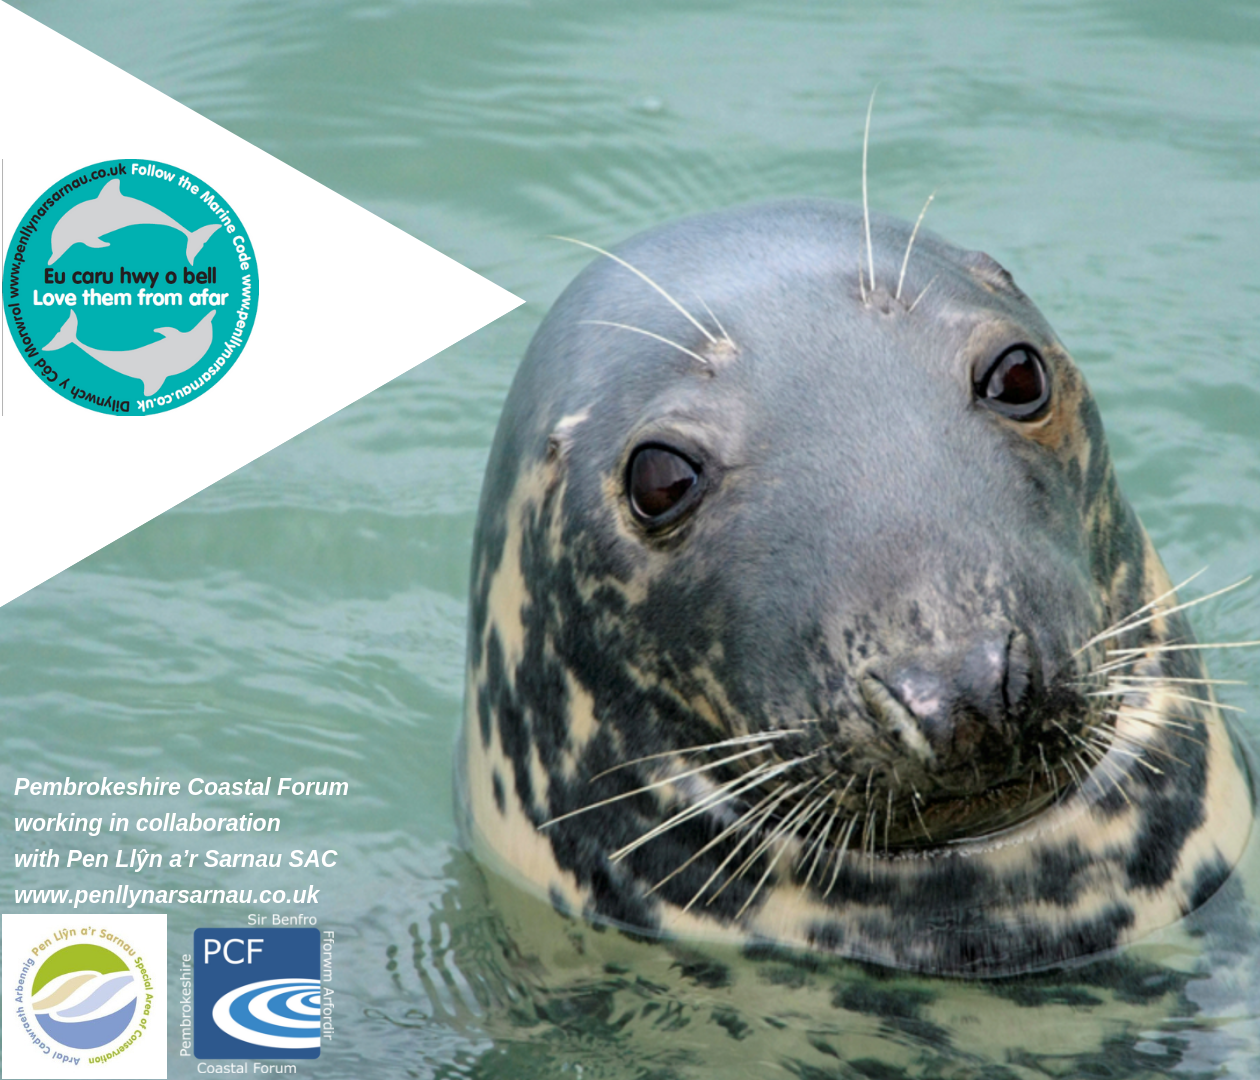 Pen Llyn Seal image